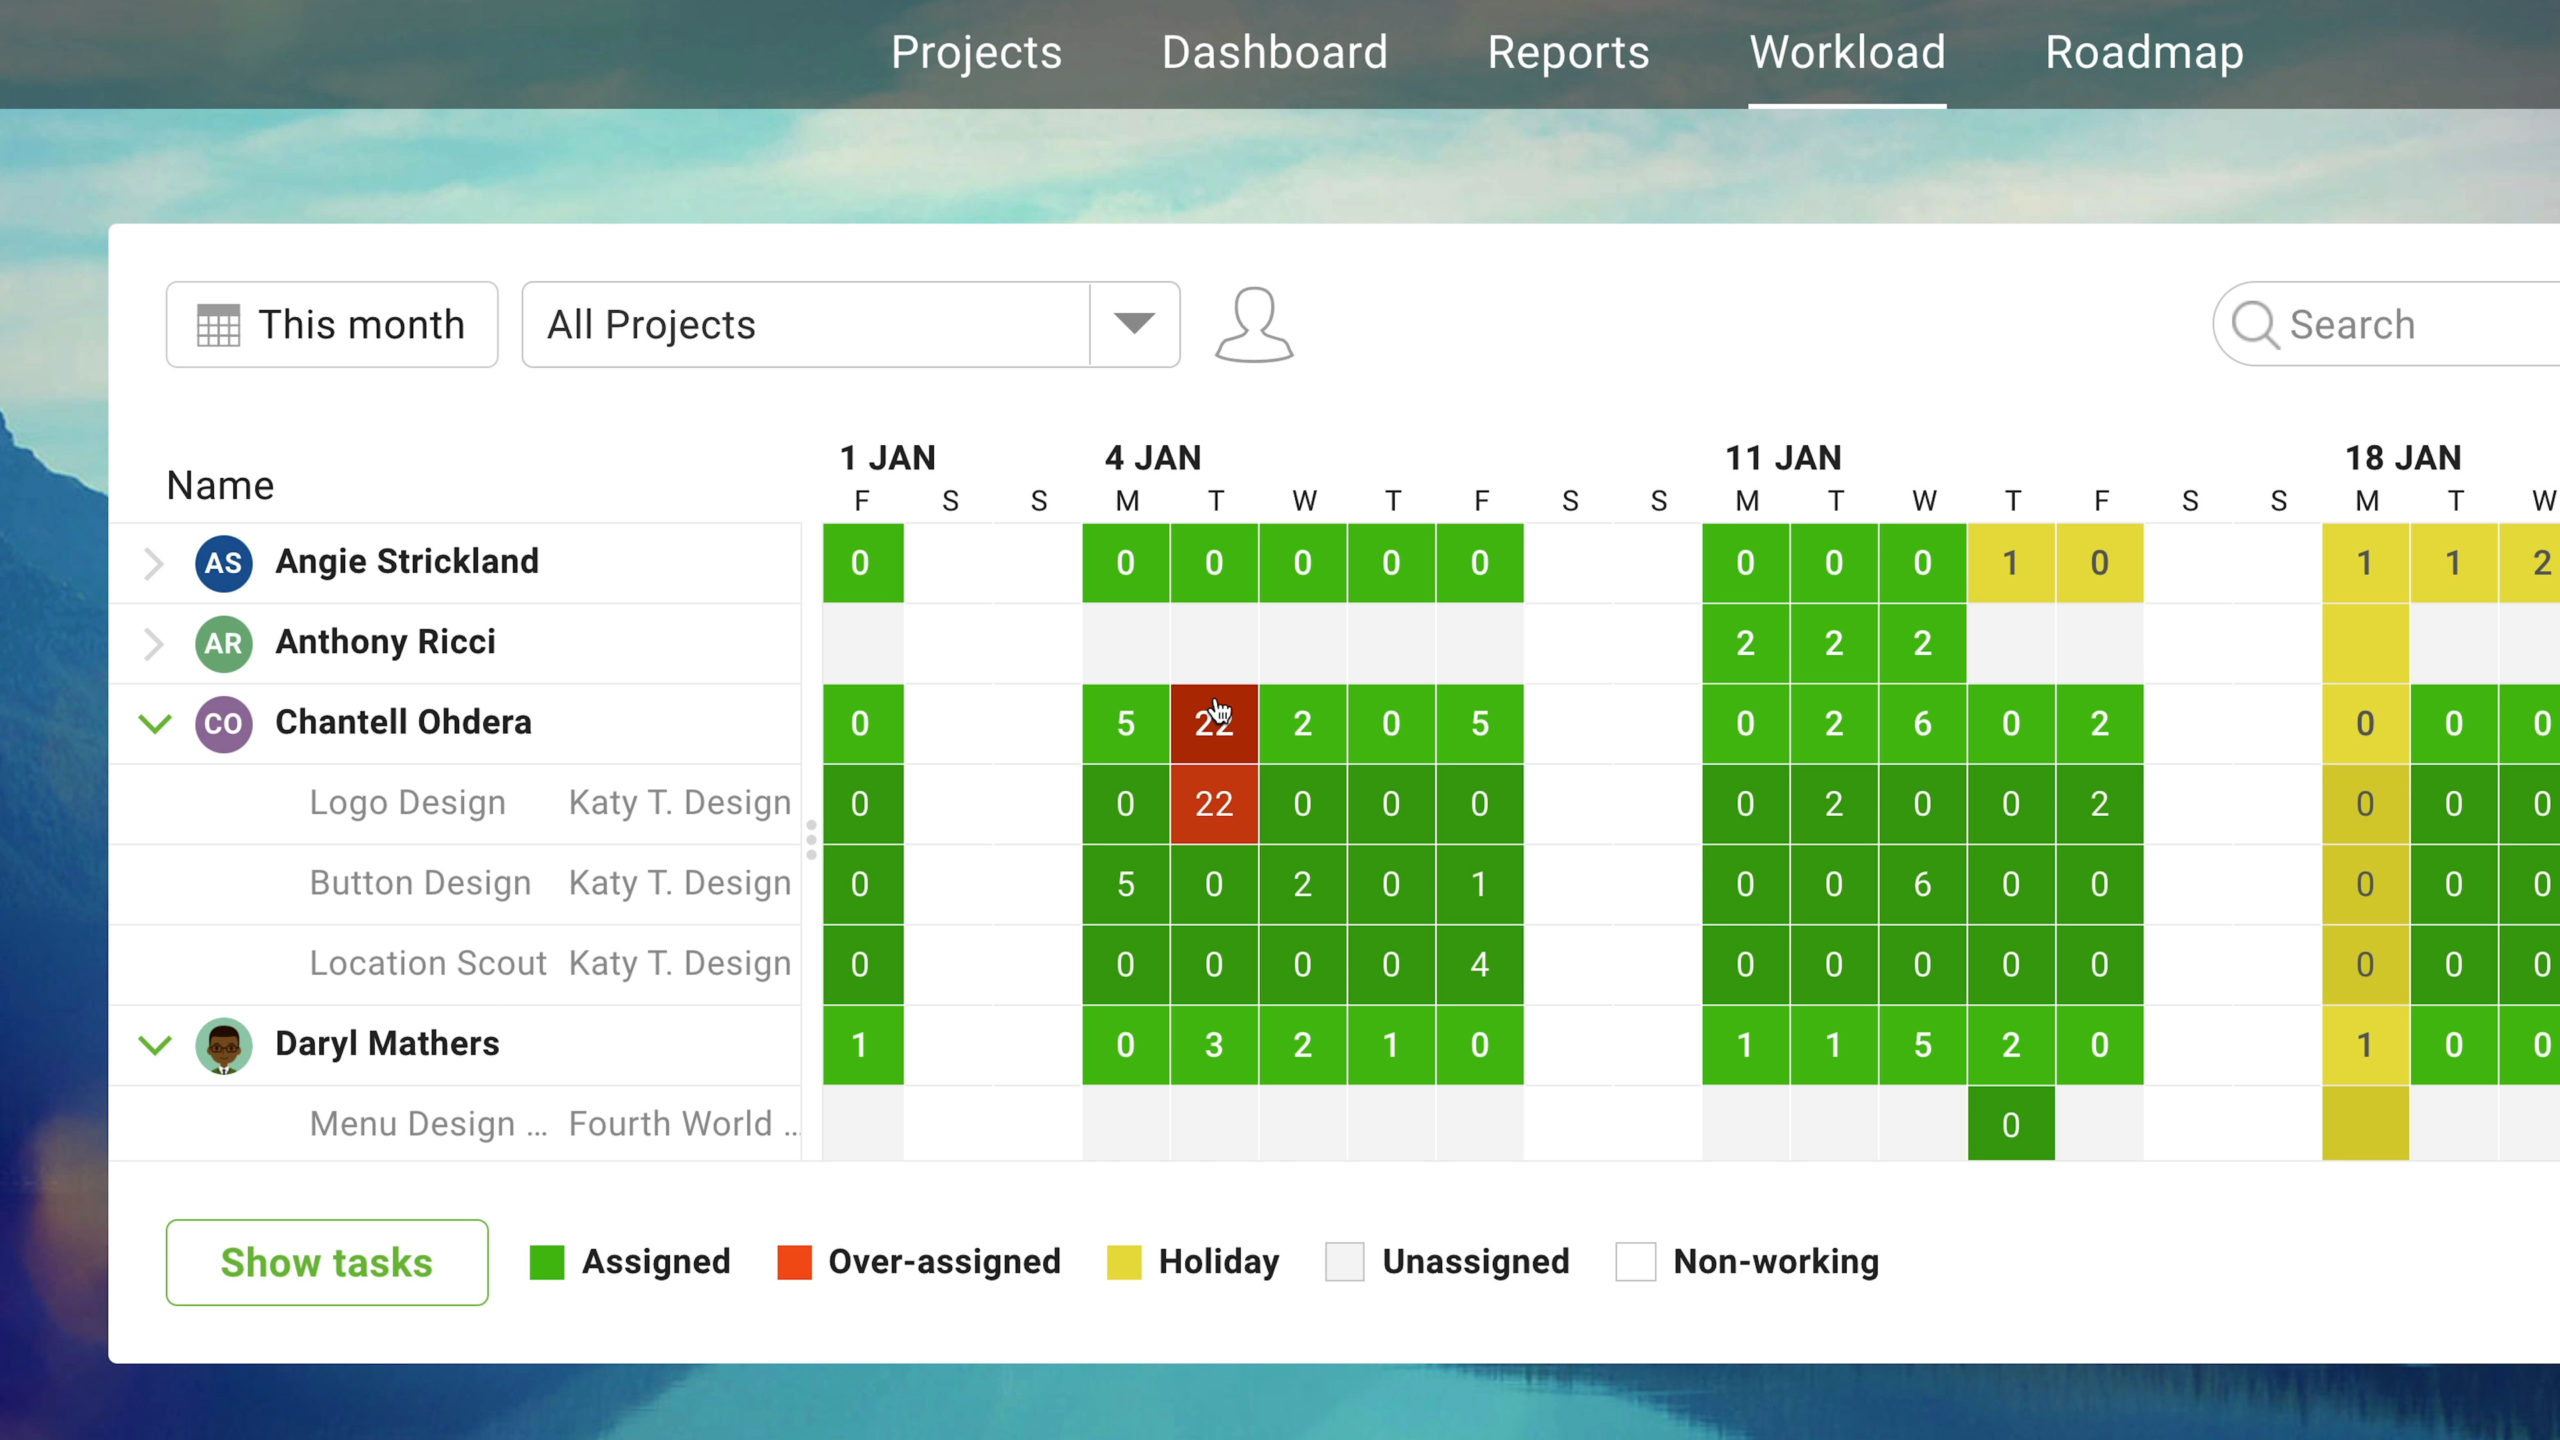 workload page let's you manage your team's assignments